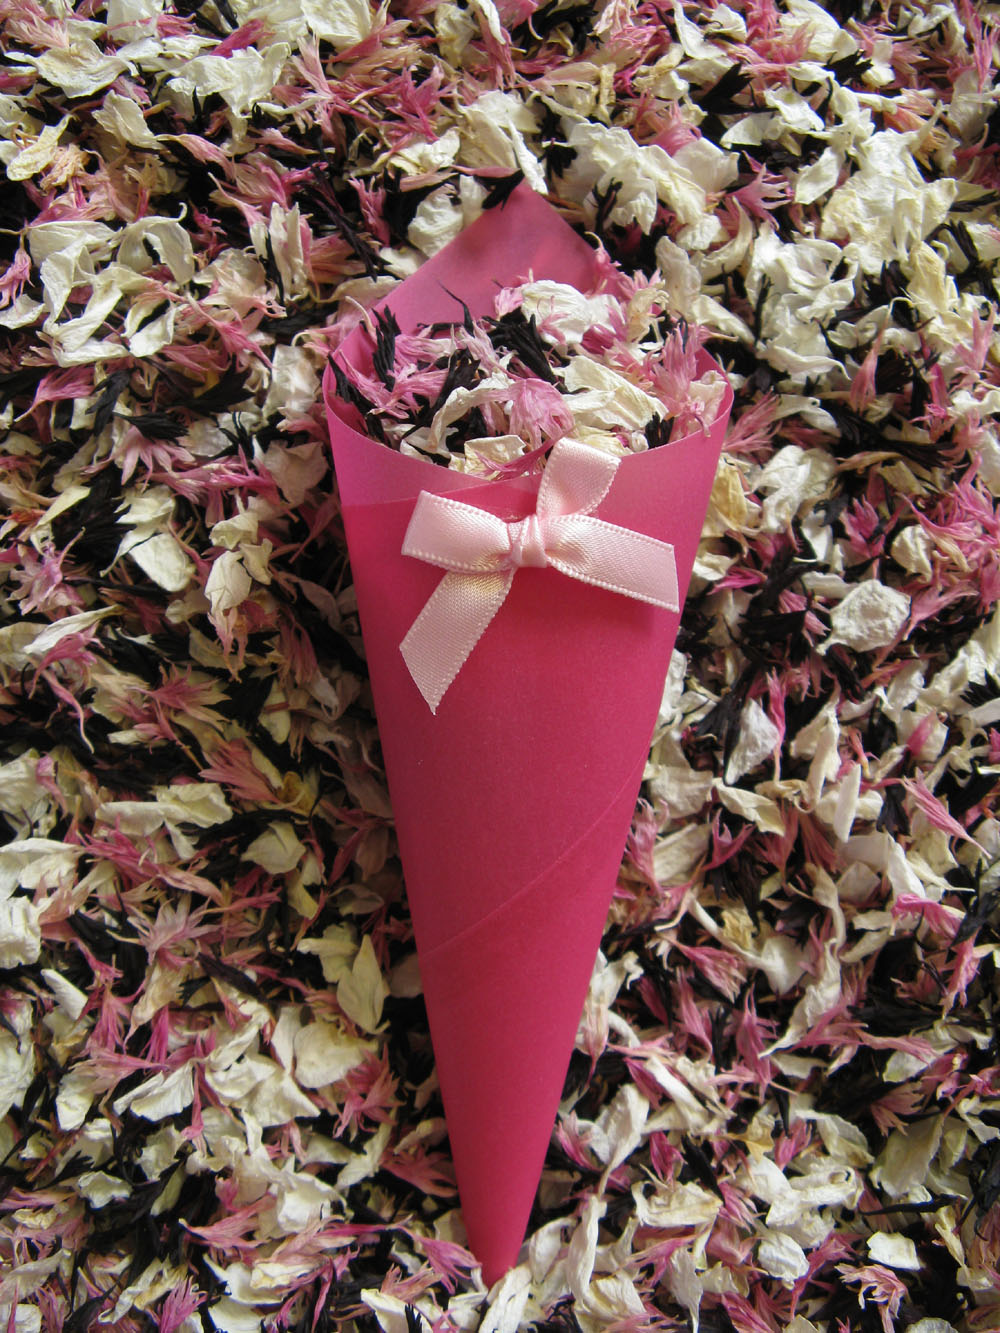 Petal Confetti - Delphiniums, Wildflowers and Lavender - Ivory, Tudor Pink and Blackberry confetti petals